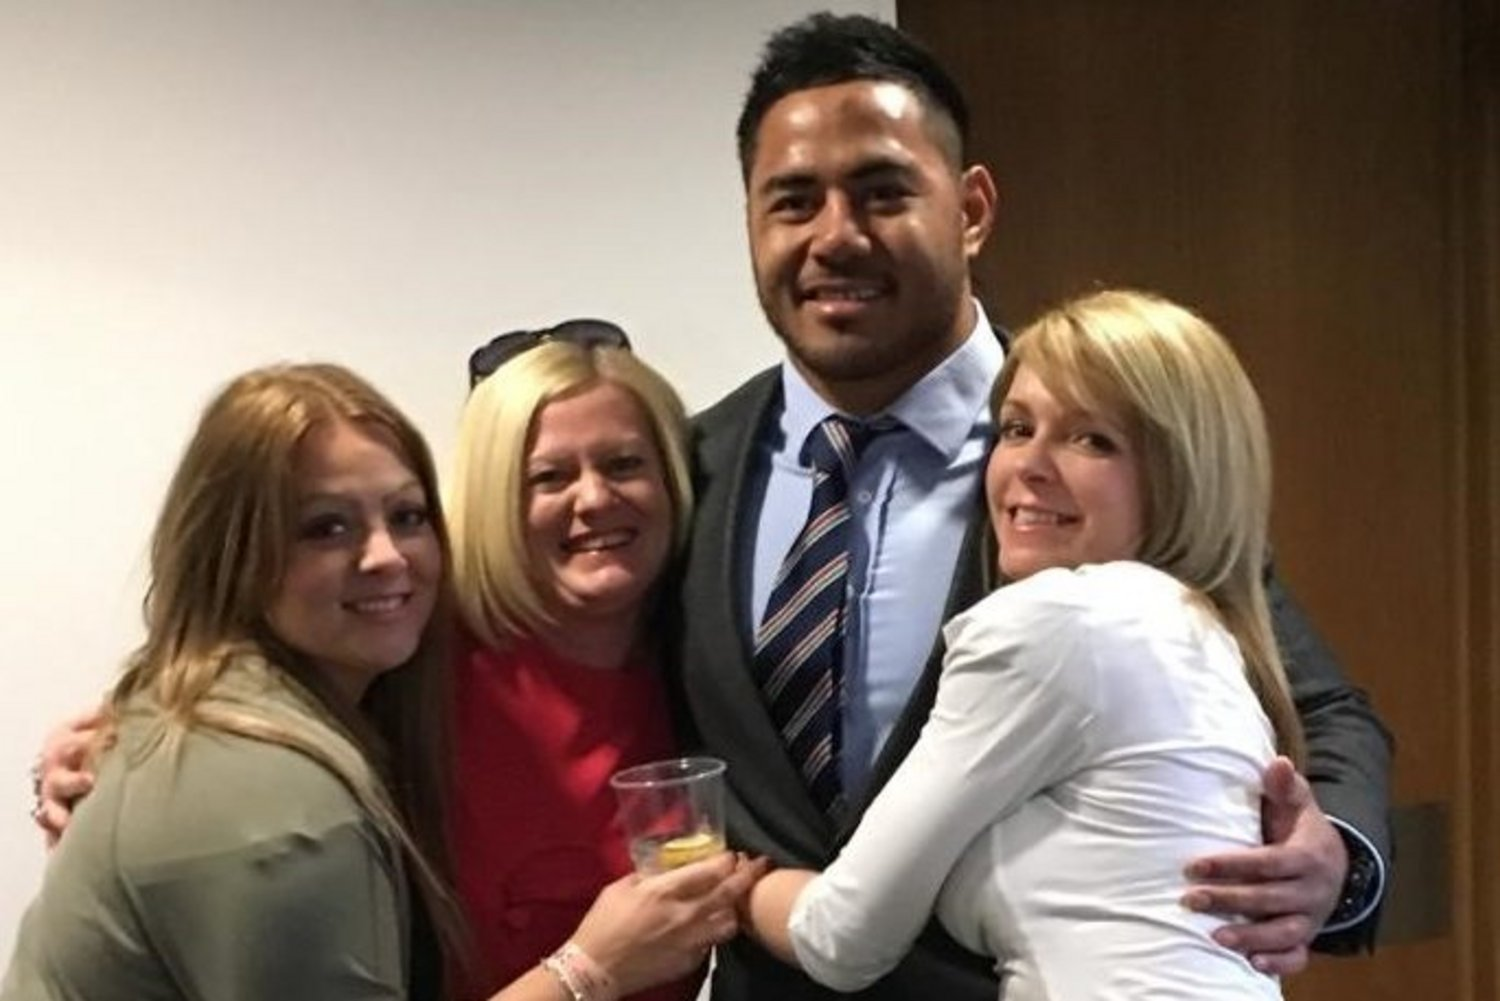 Manu meeting more of the #TigersFamily